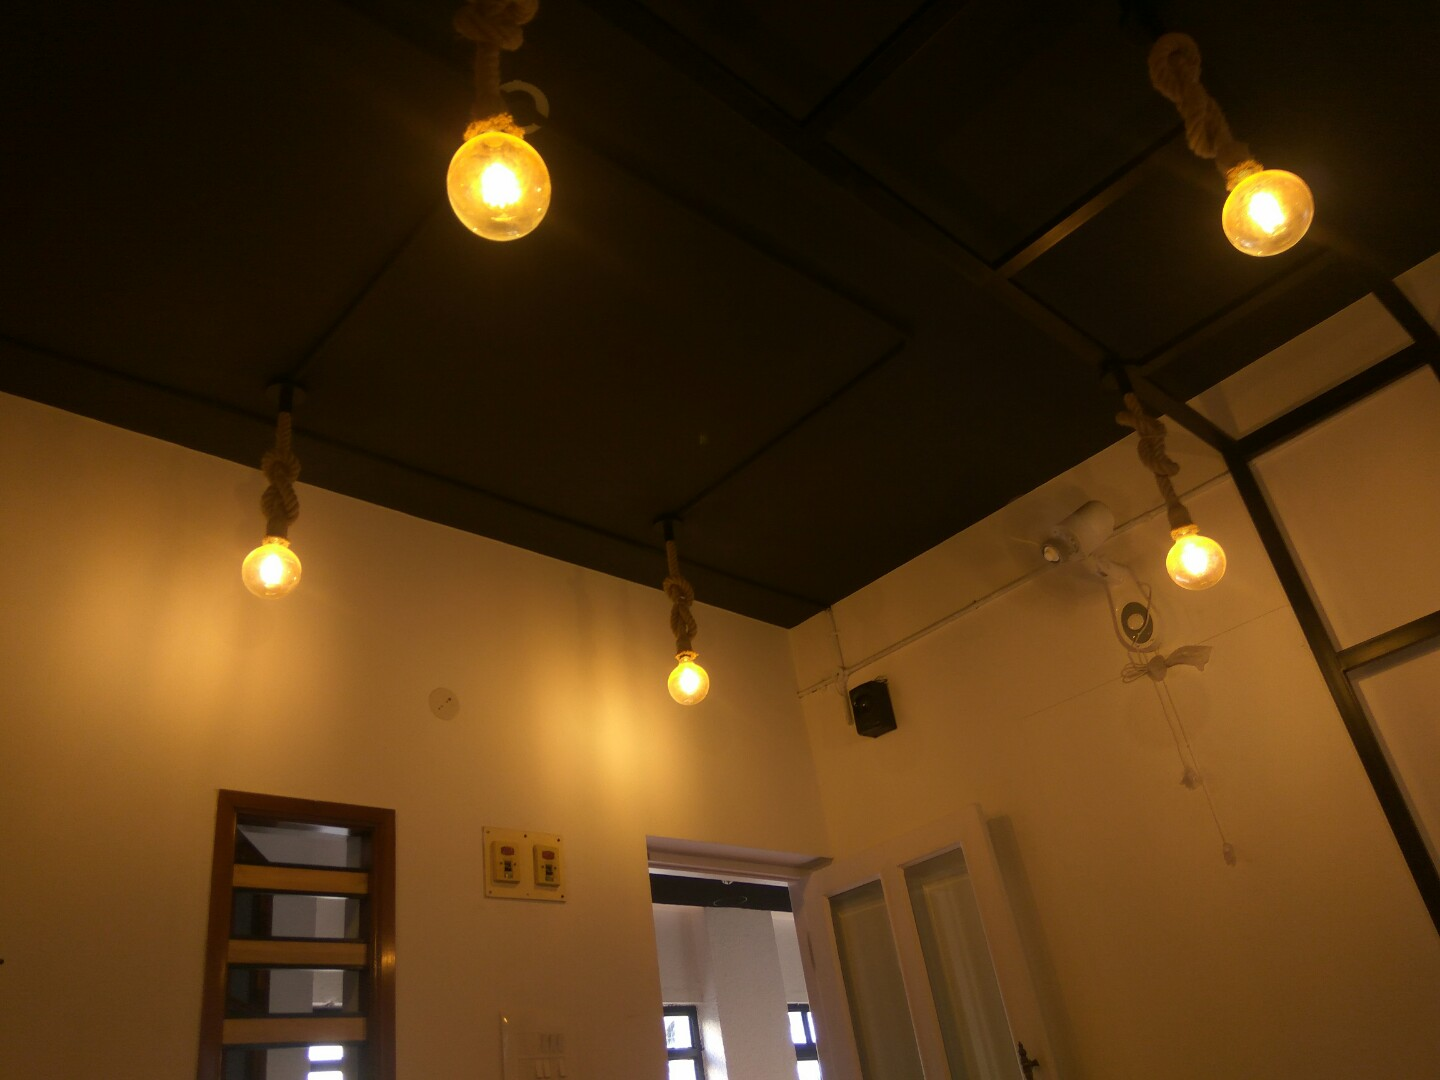 Lights in a room